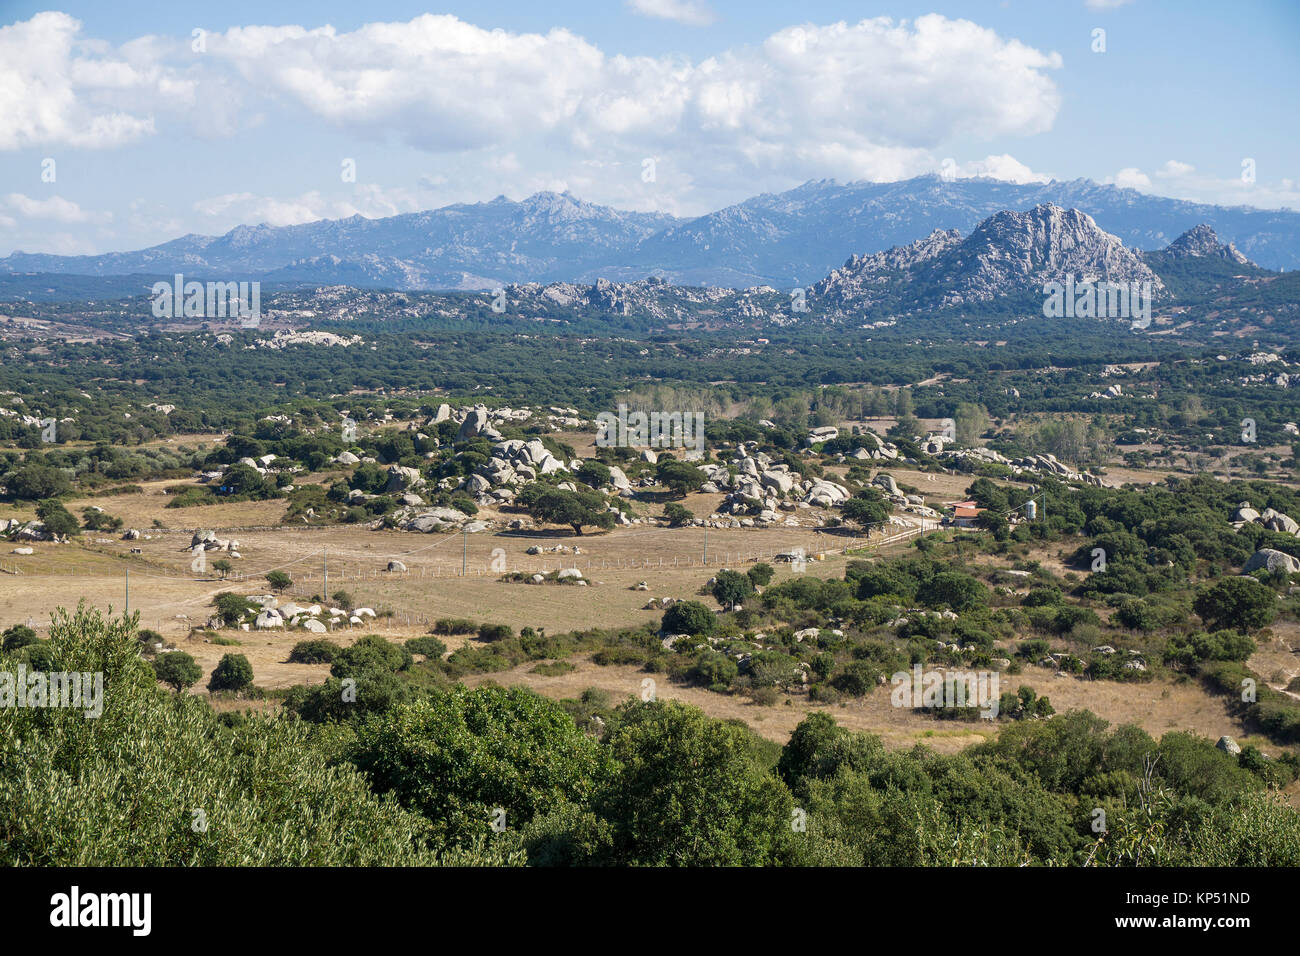 Valle della Luna, valley of the moon, granite landscape  at Aggius, Olbia-Tempio, Gallura, Sardinia, Italy, Mediterranean - Stock Image